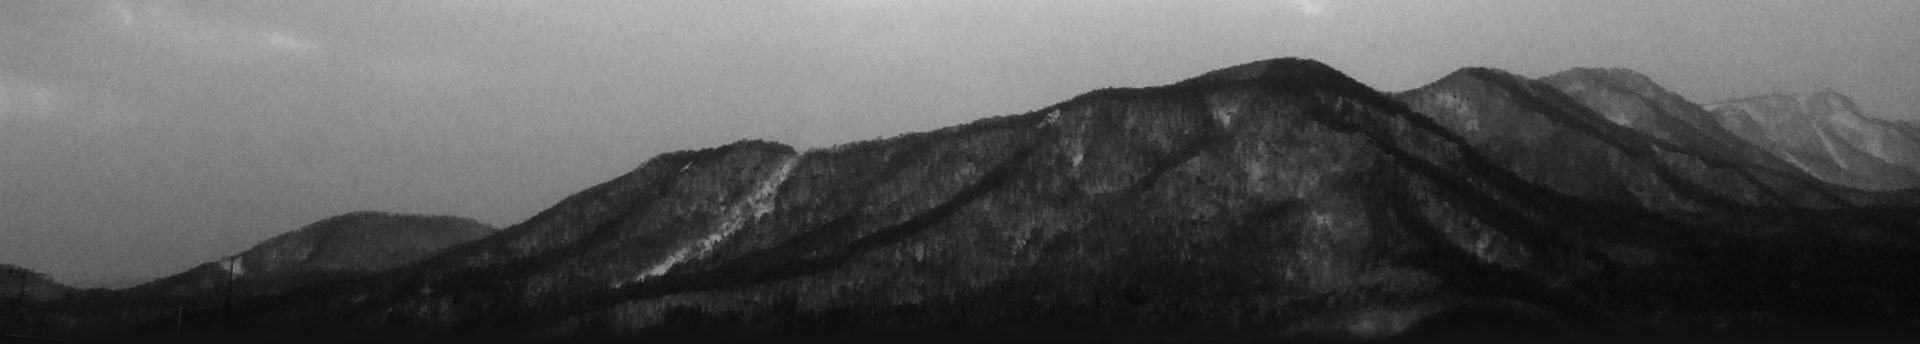 Image of Mt. Teine in Sapporo, Japan